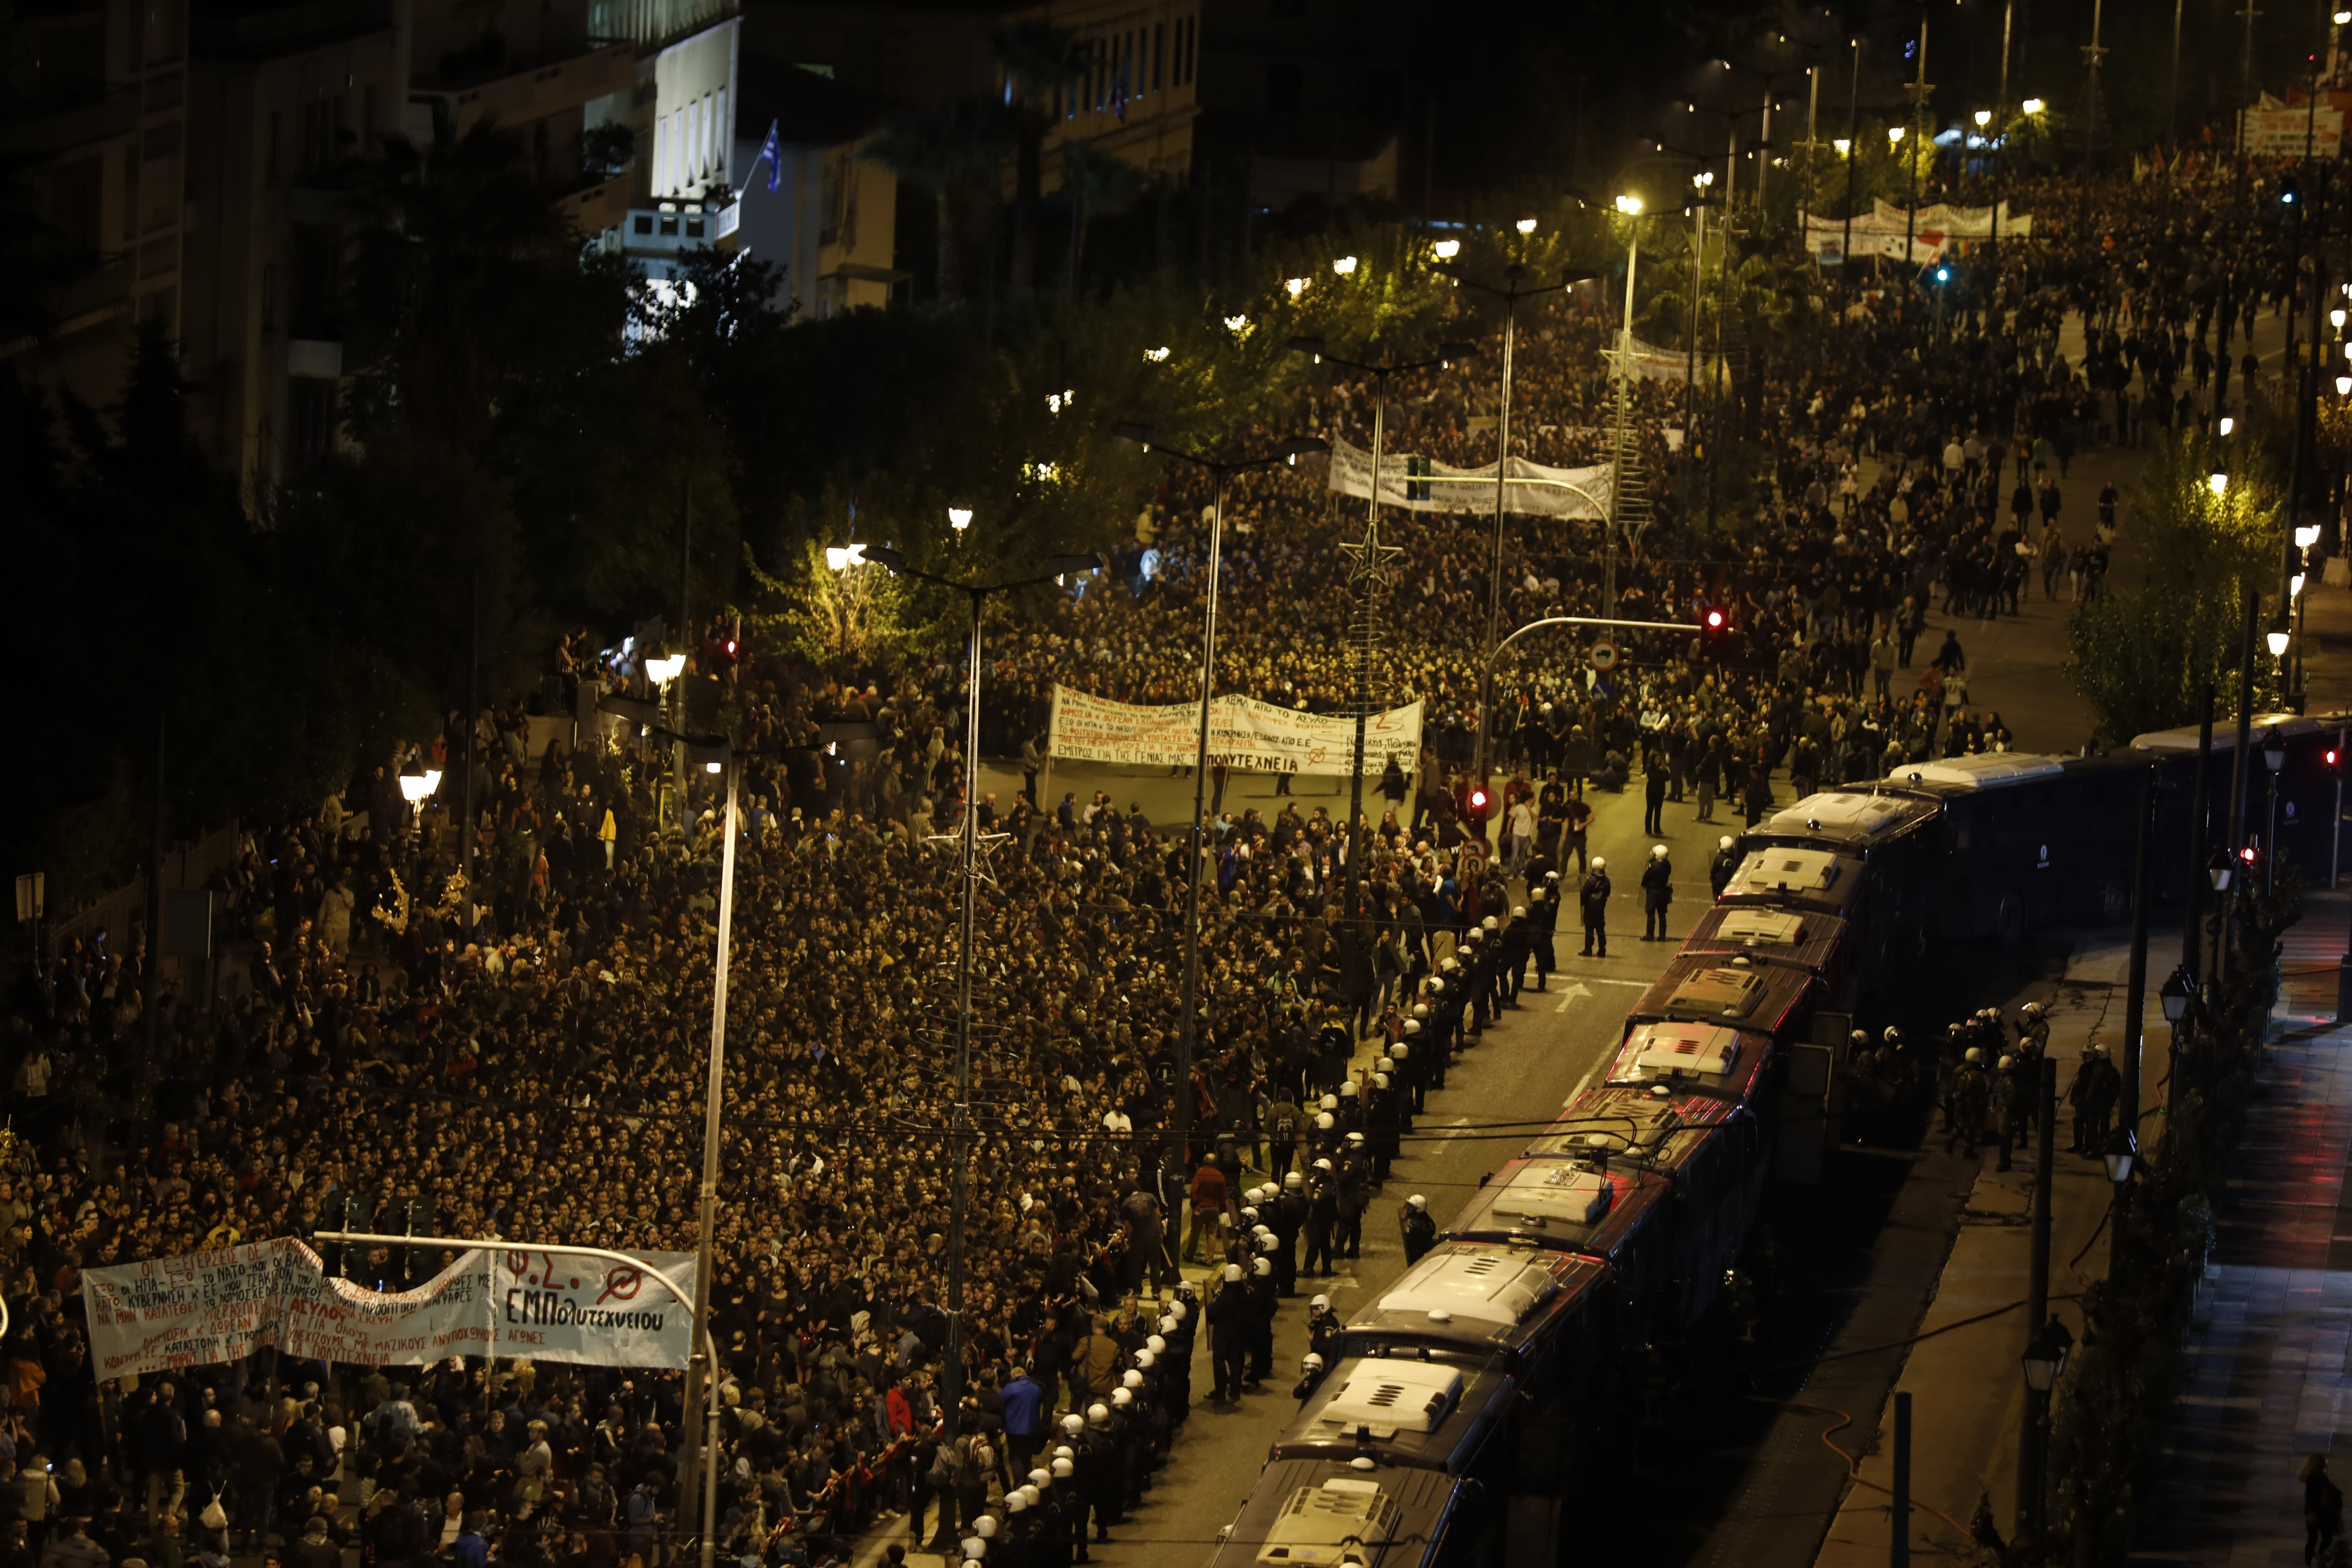 Riot police guard the U.S. Embassy as protesters take part in a rally in Athens, Sunday, Nov. 17, 2019. Several thousands people march to the U.S. Embassy in Athens under tight police security to commemorate a 1973 student uprising that was crushed by Greece's military junta, that ruled the country from 1967-74. (AP Photo/Petros Giannakouris)